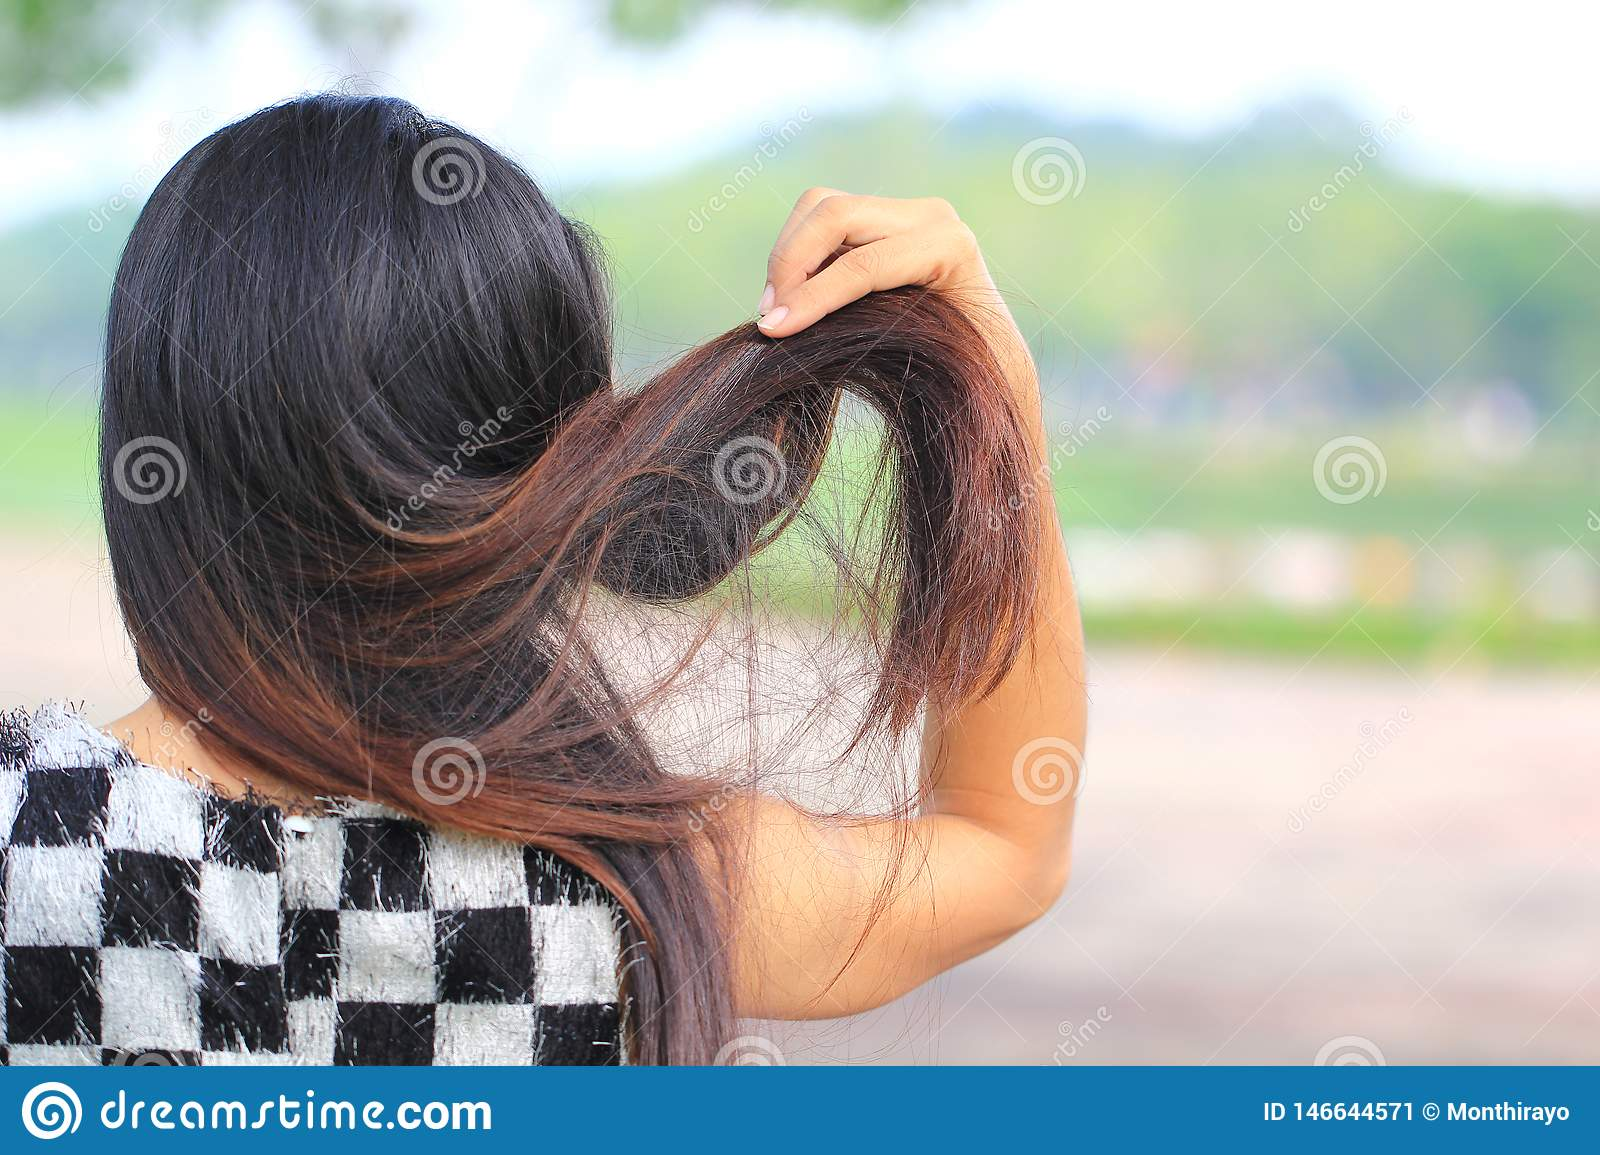 Woman holding messy damaged dry hair in hands on nature background, Haircare concept